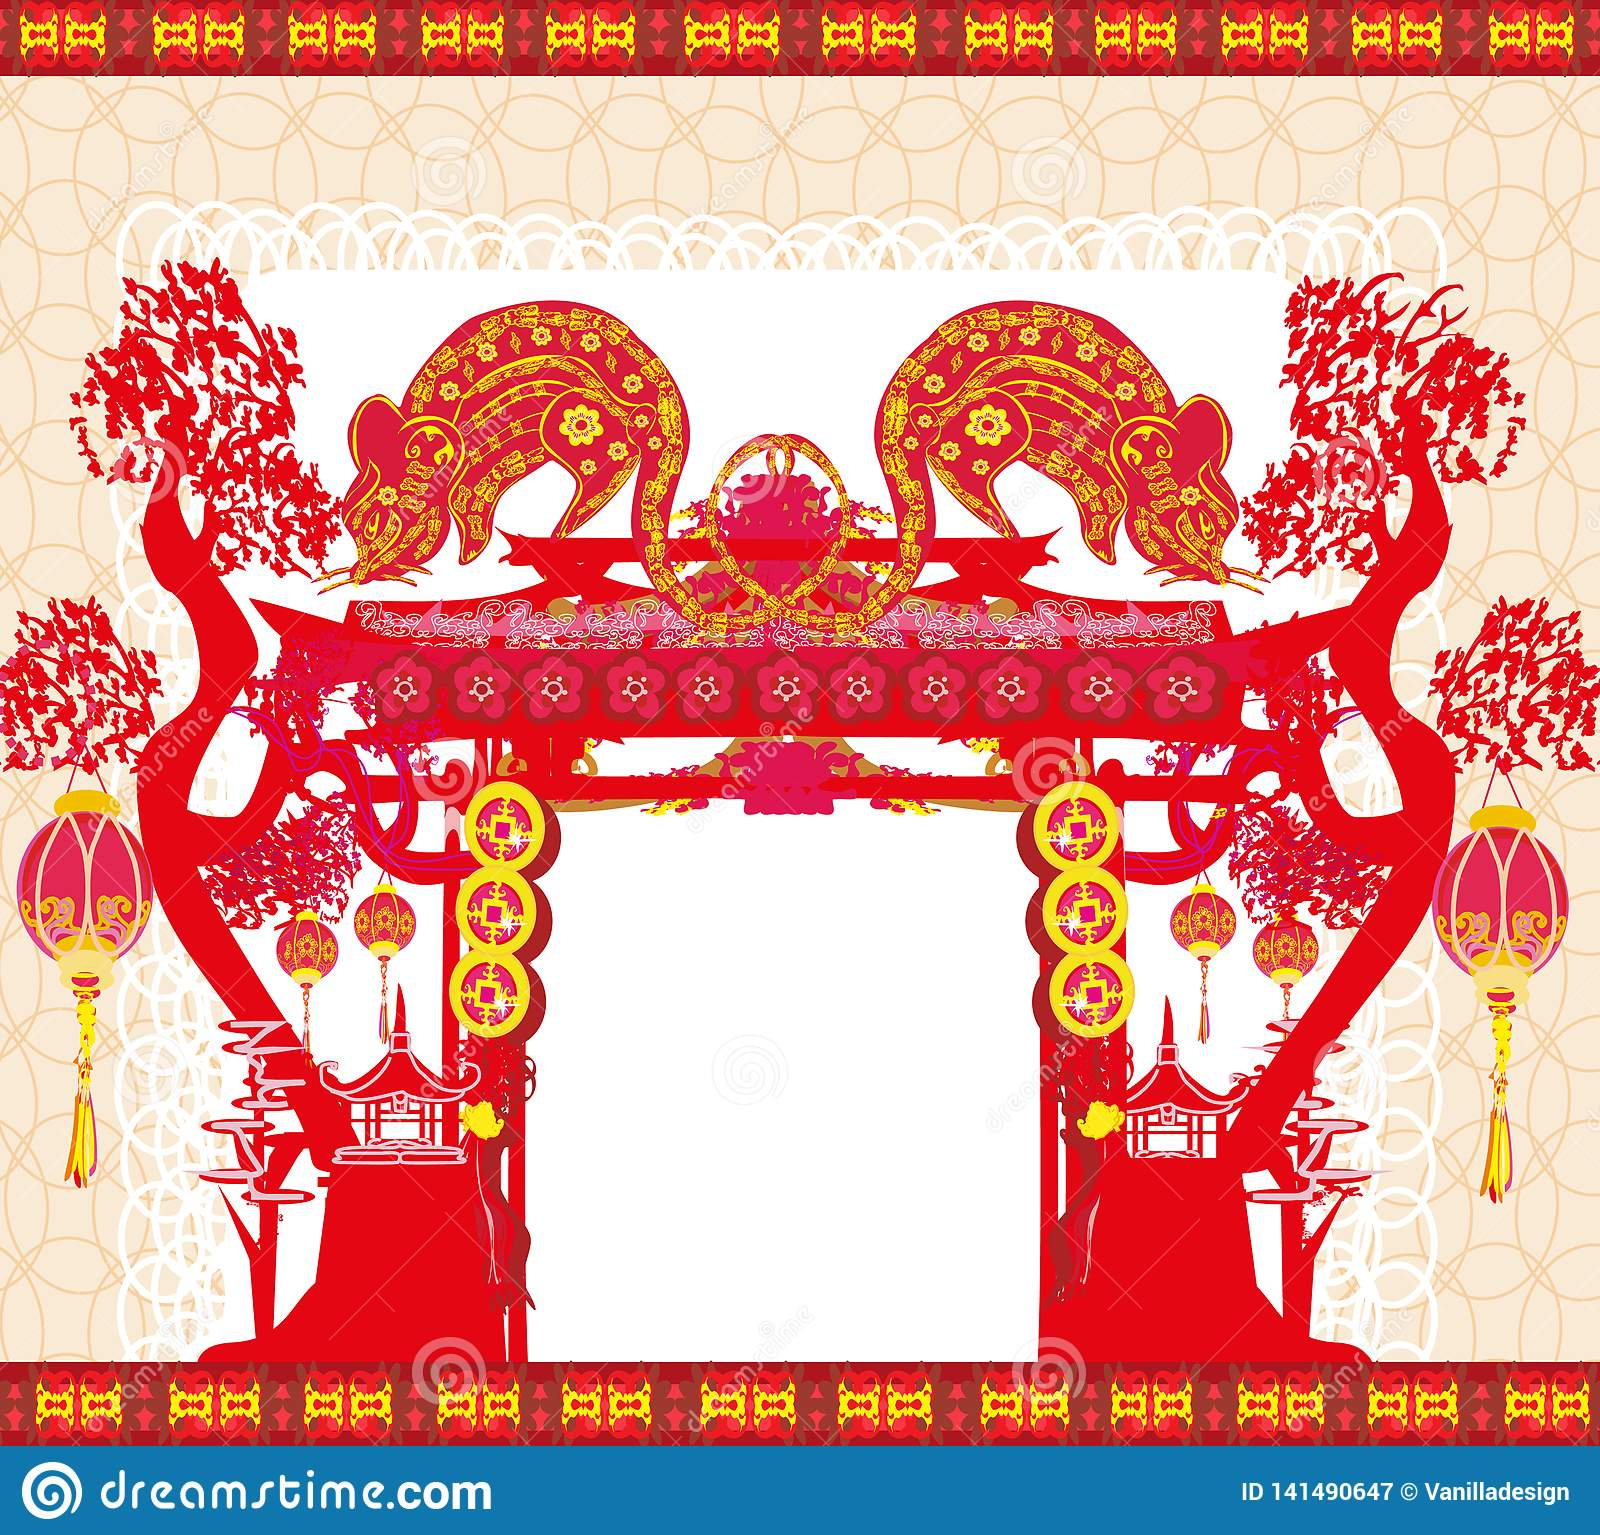 Happy Chinese New Year 2020 - Year Of The Rat Stock Vector ...